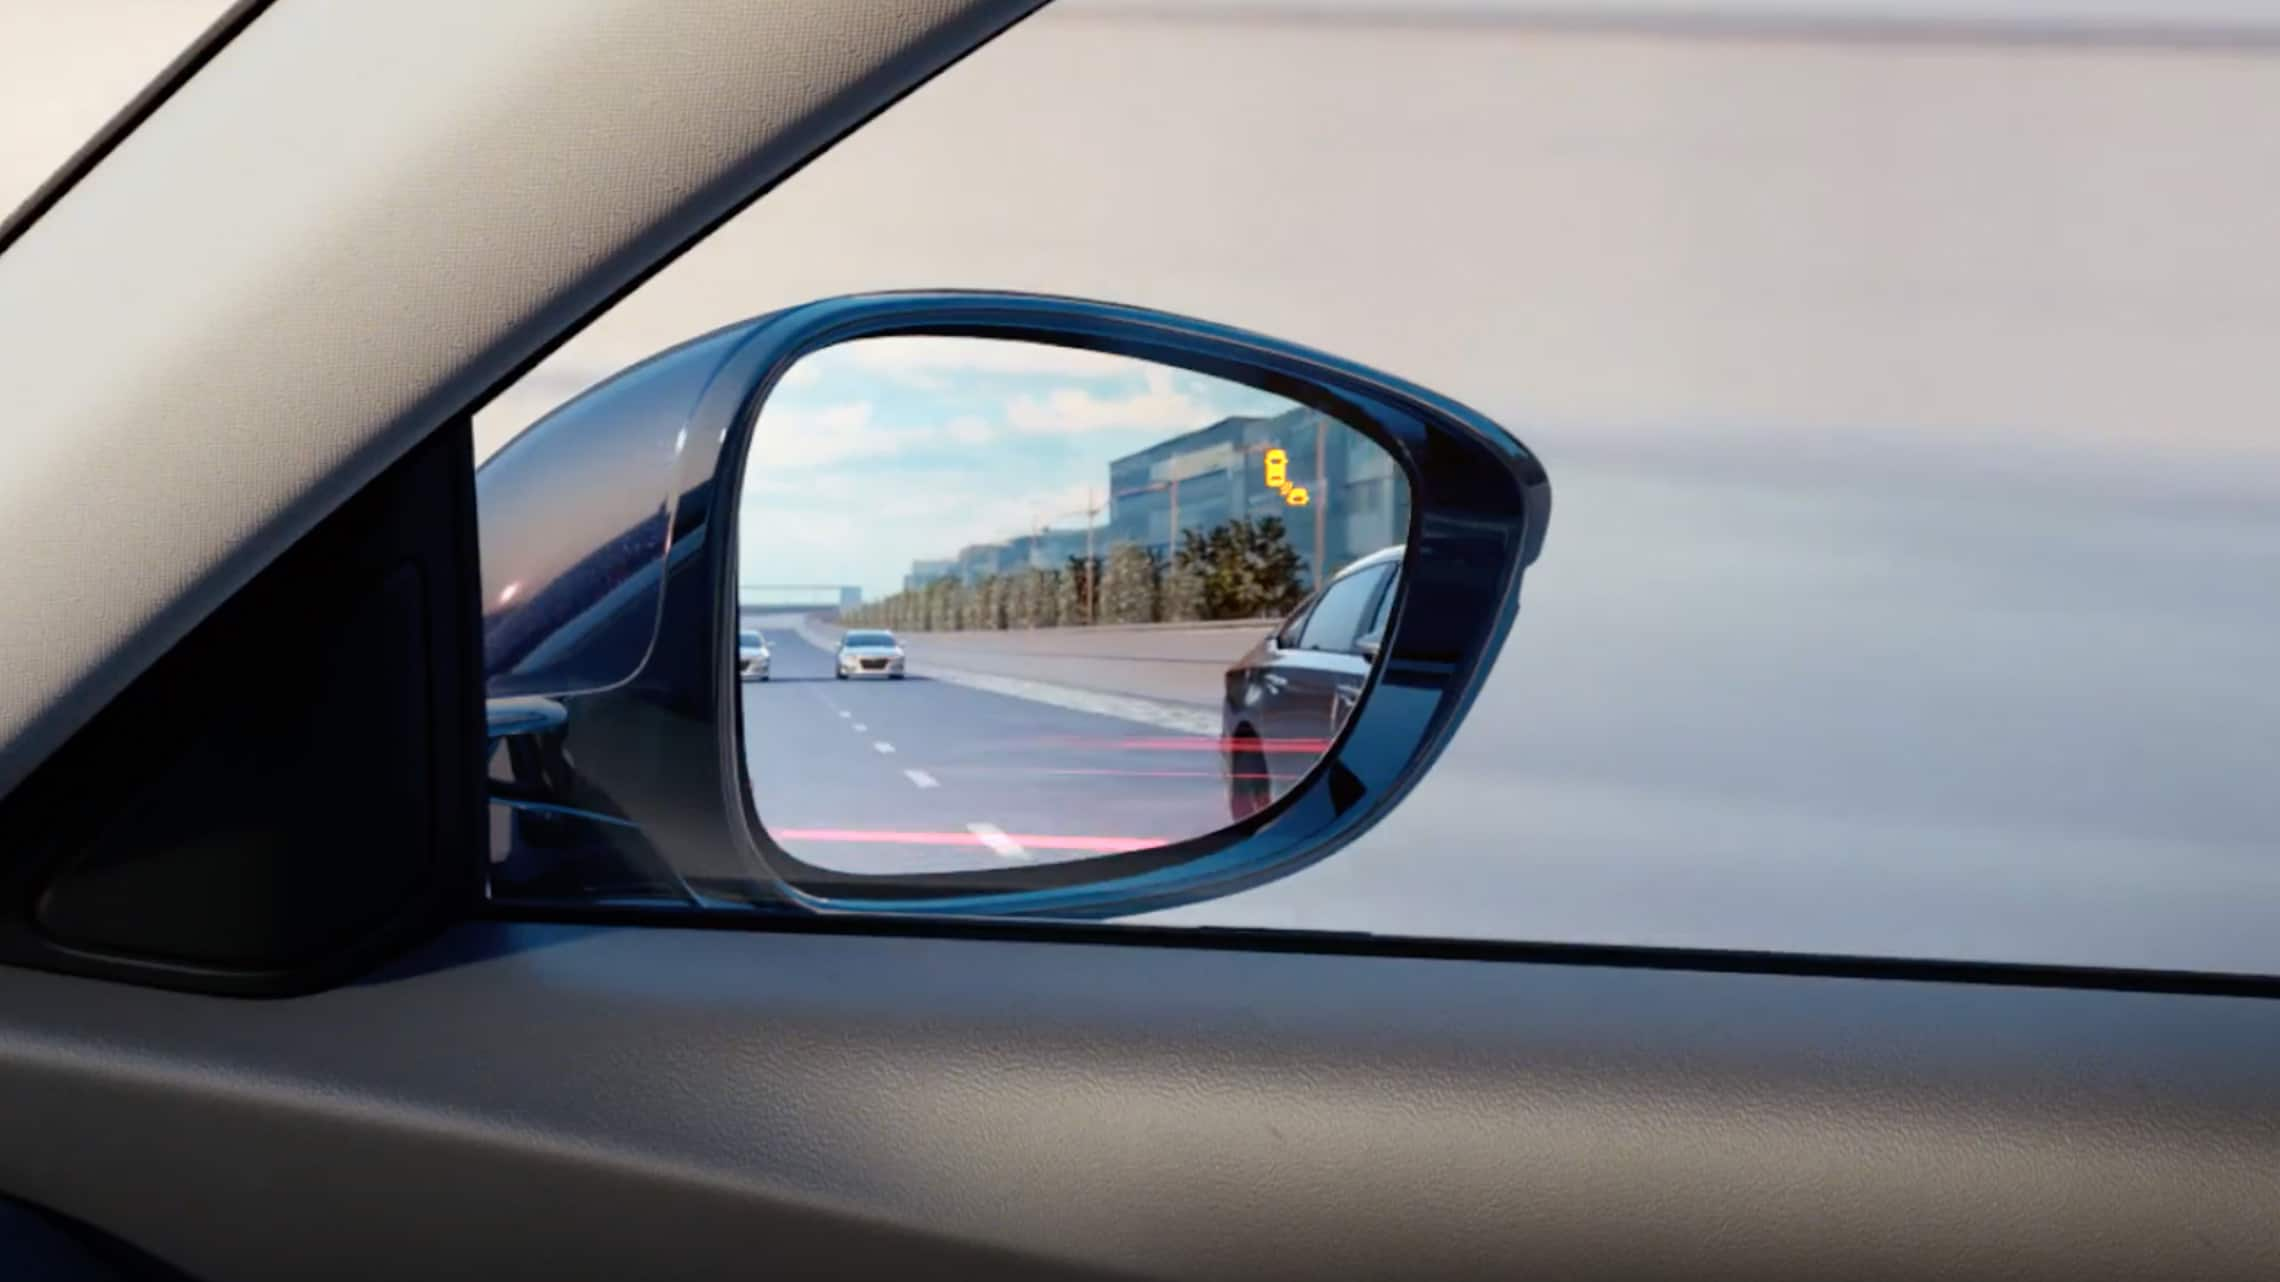 Detail of blind spot information system indicator on passenger-side mirror in the 2020 Honda Accord.